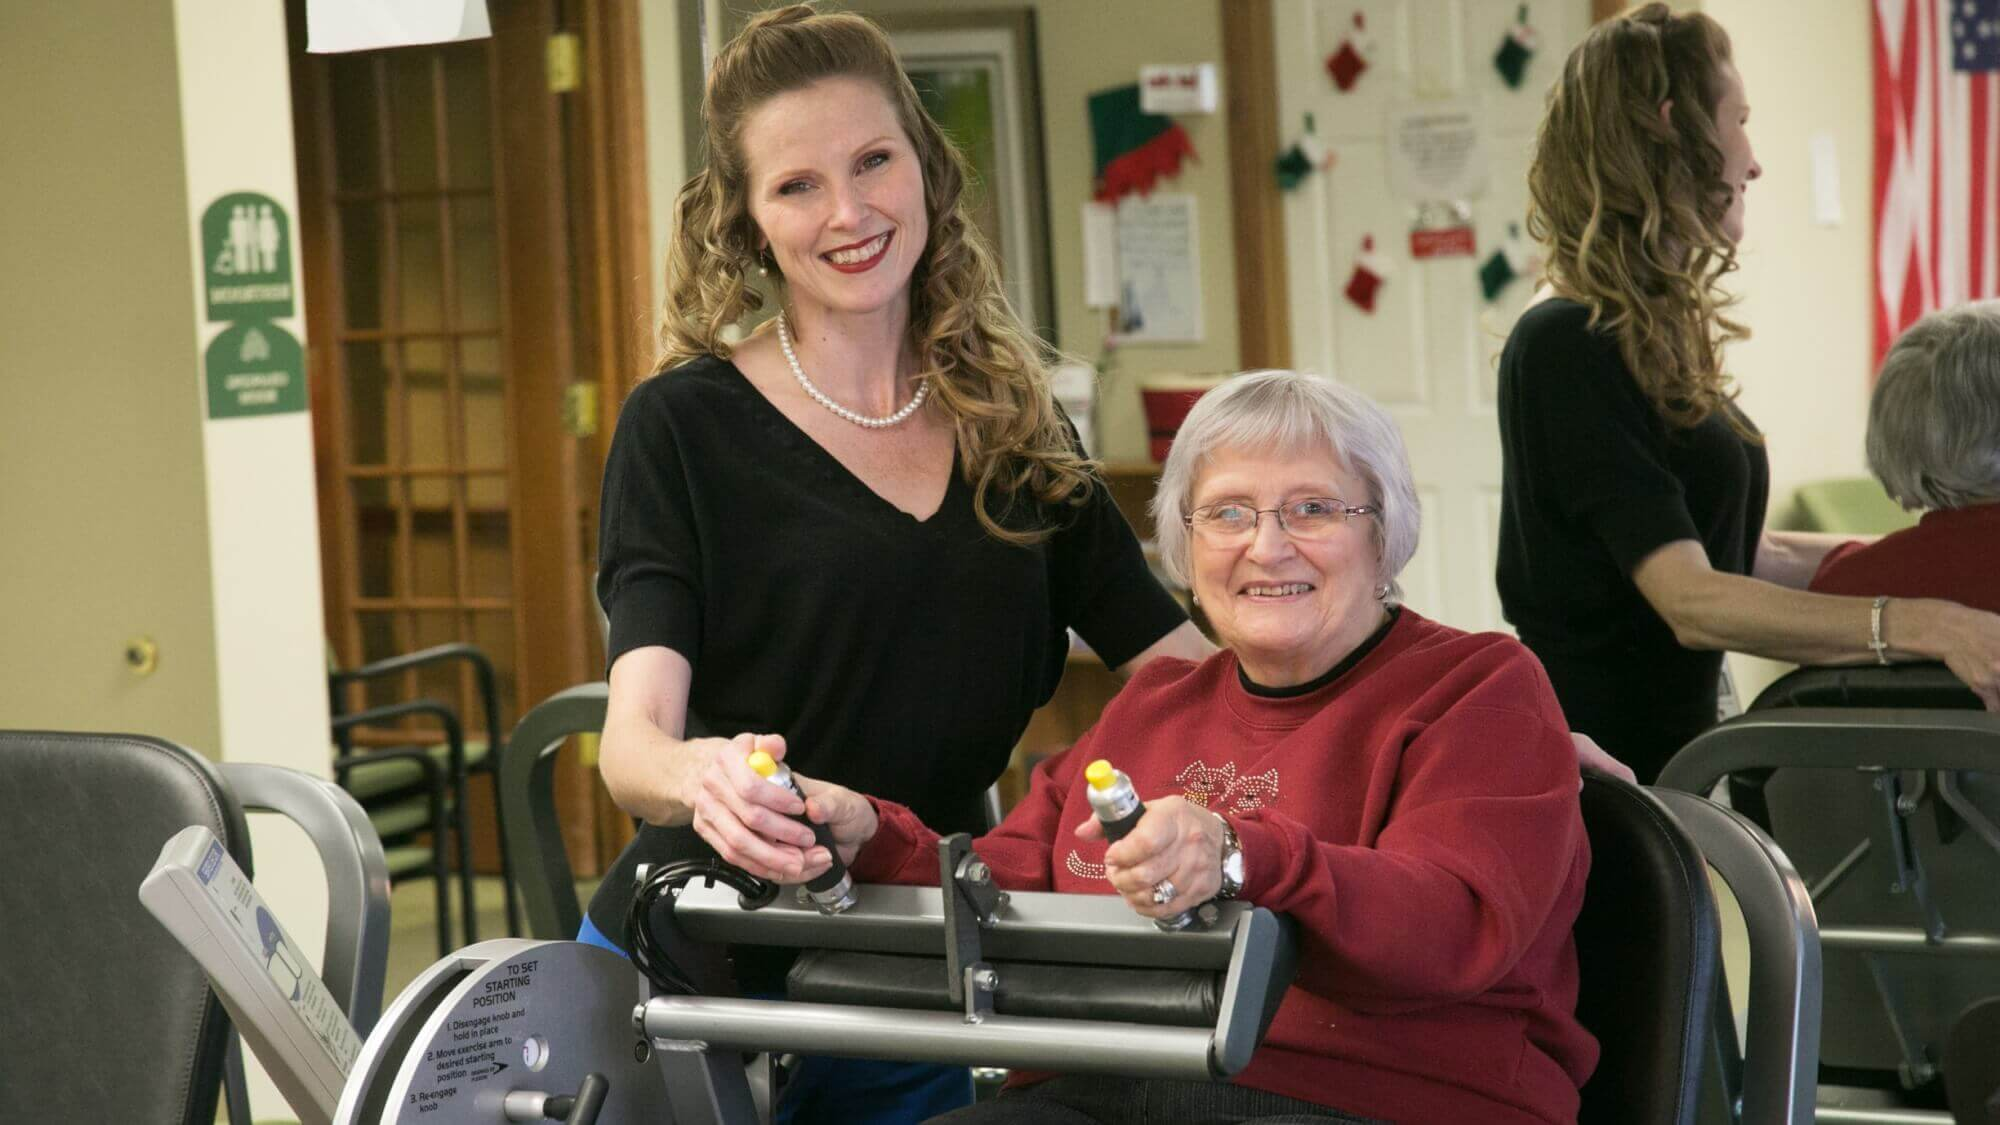 Happy senior in the fitness center with an employee.